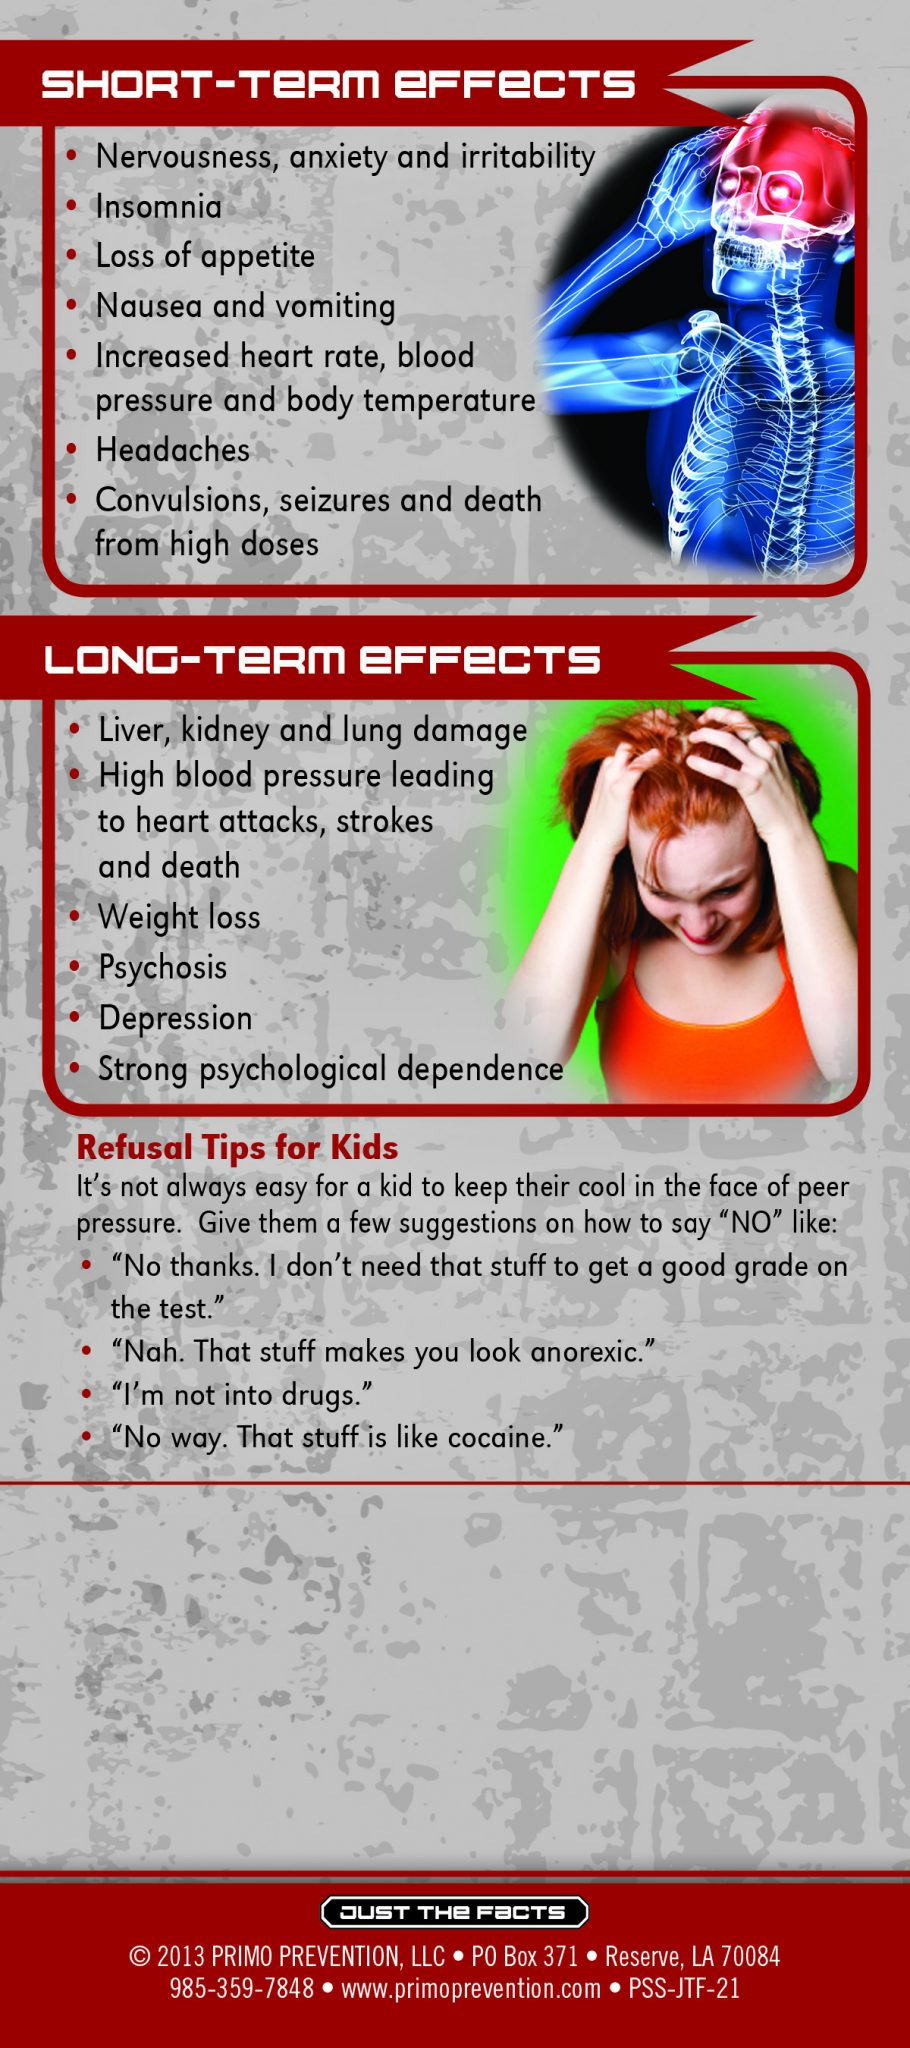 Just the Facts Rack Card: Ritalin